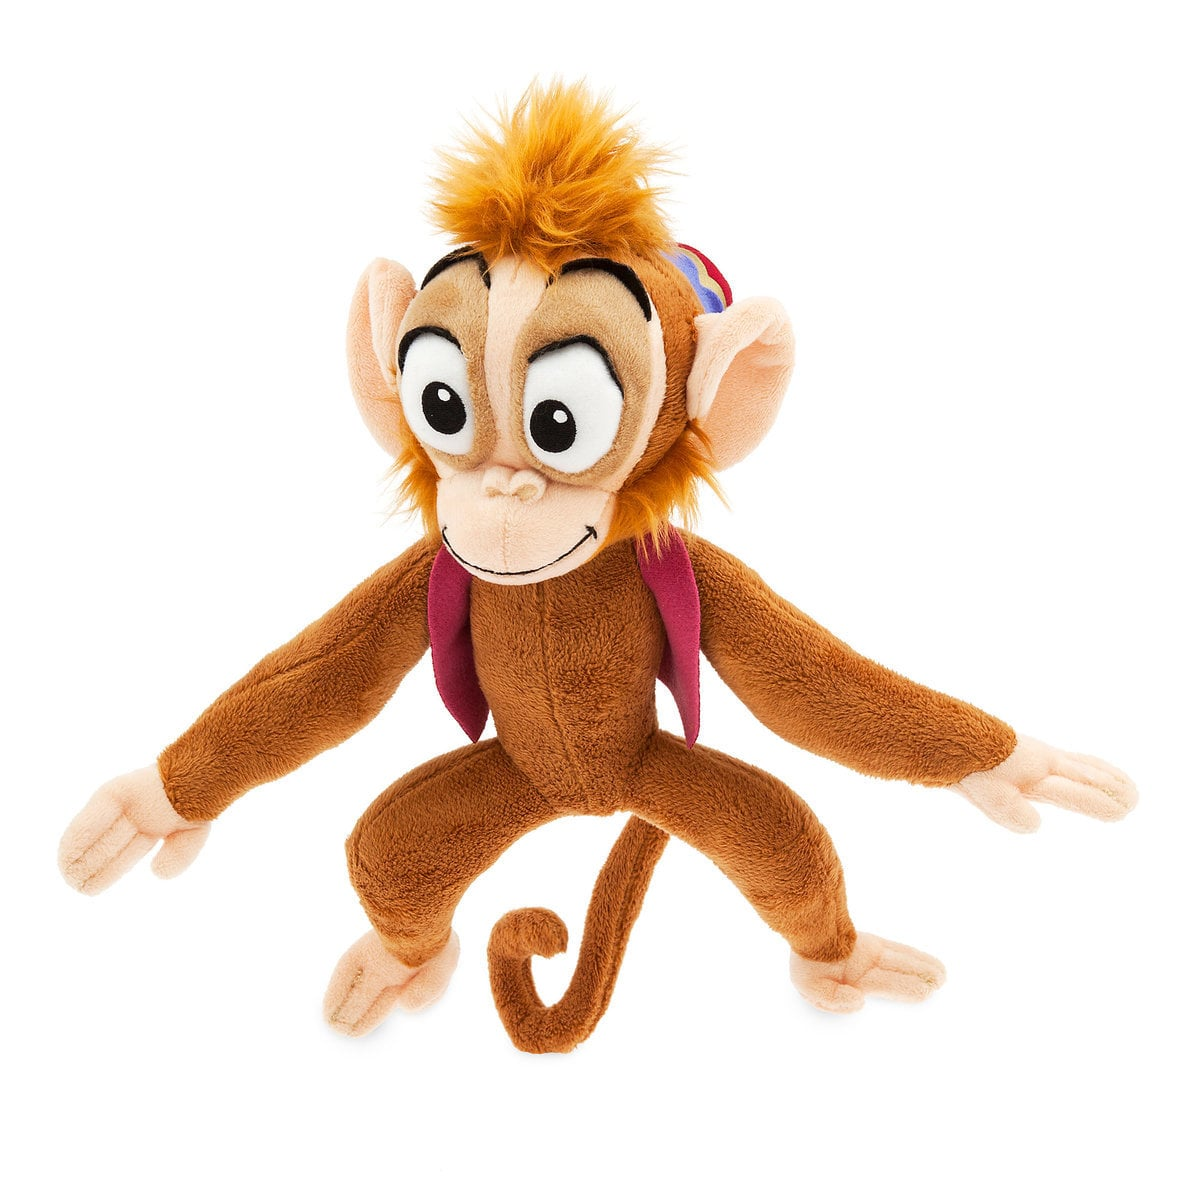 Disney Aladdin Small Plush Abu Monkey Disney Store Exclusive